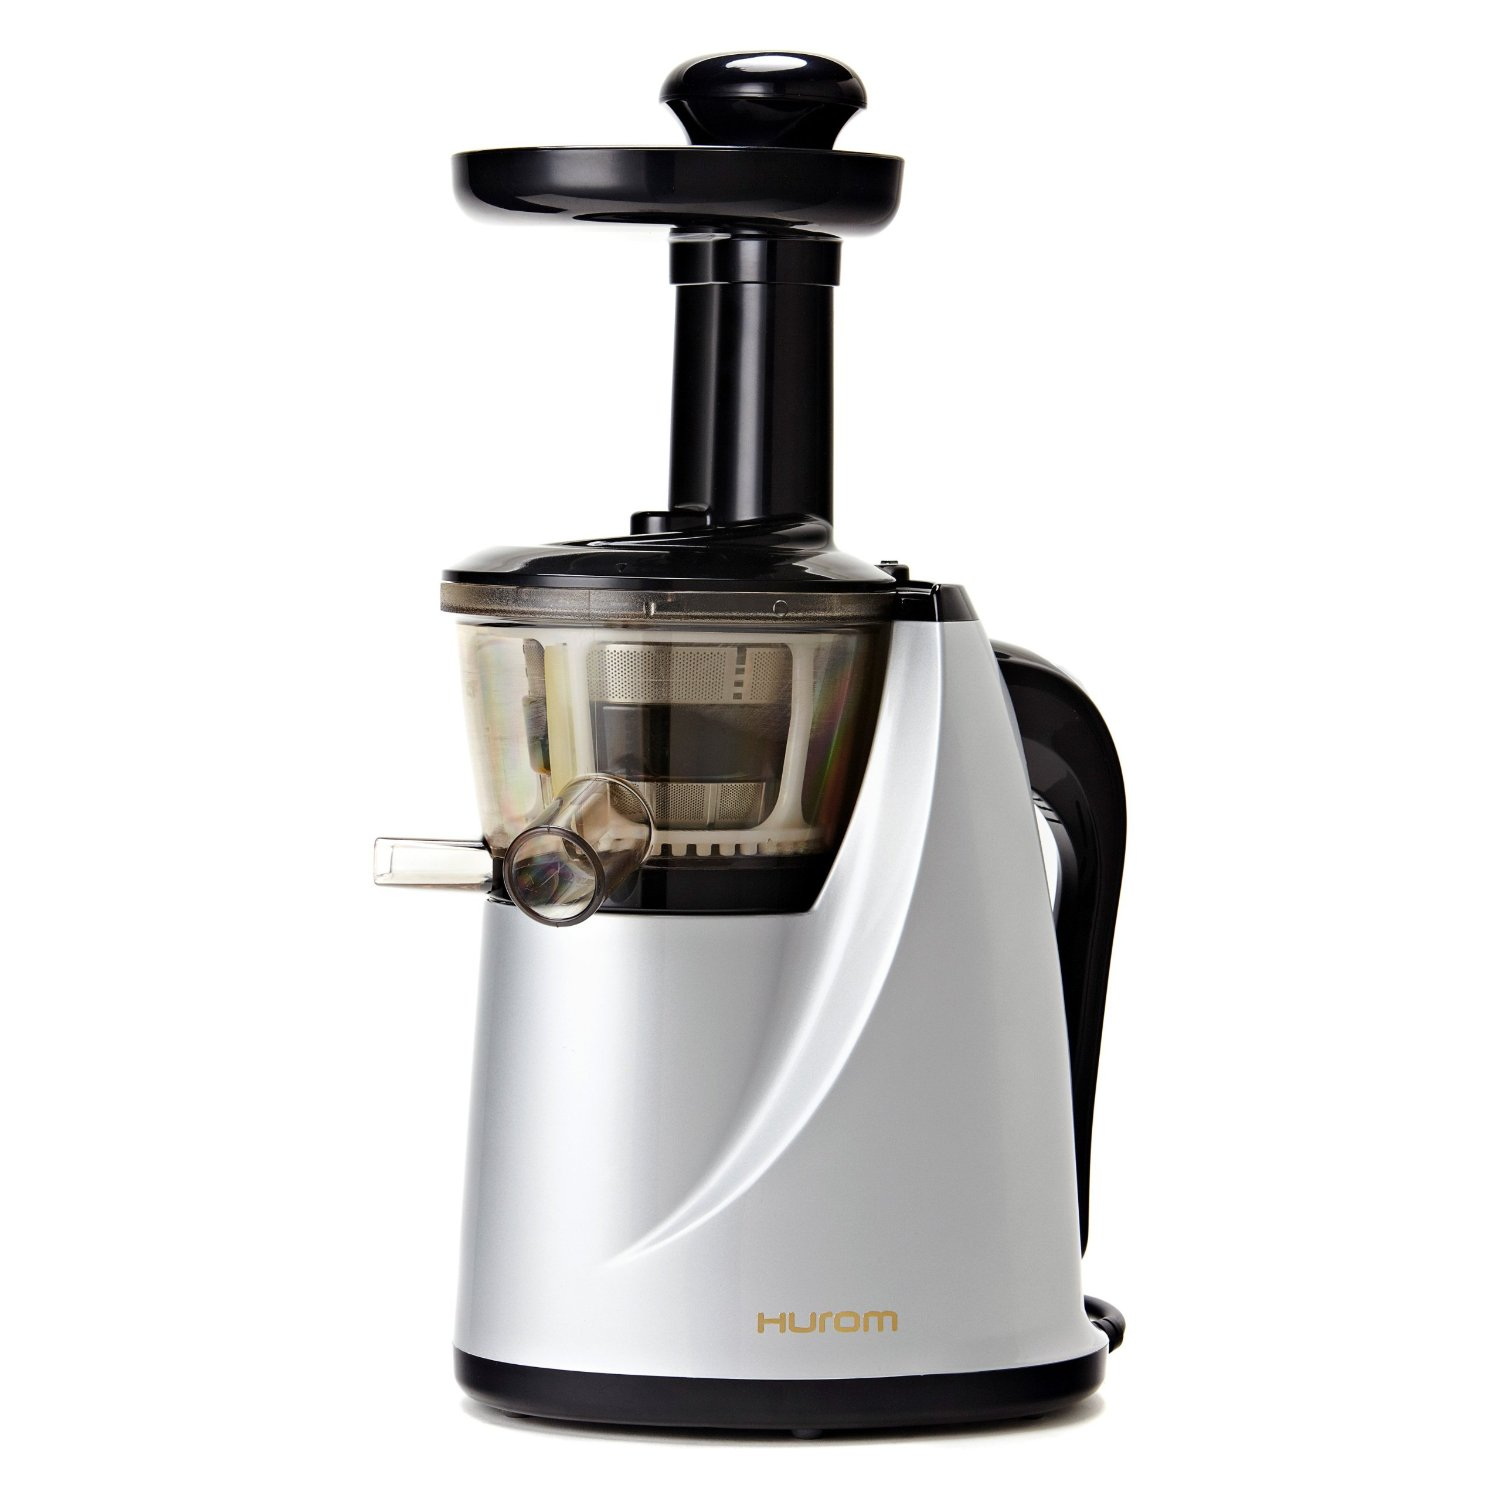 Ranbem Slow Juicer Review : Hurom HU-100 Masticating Slow Juicer Review - Best Cold Press Juicers